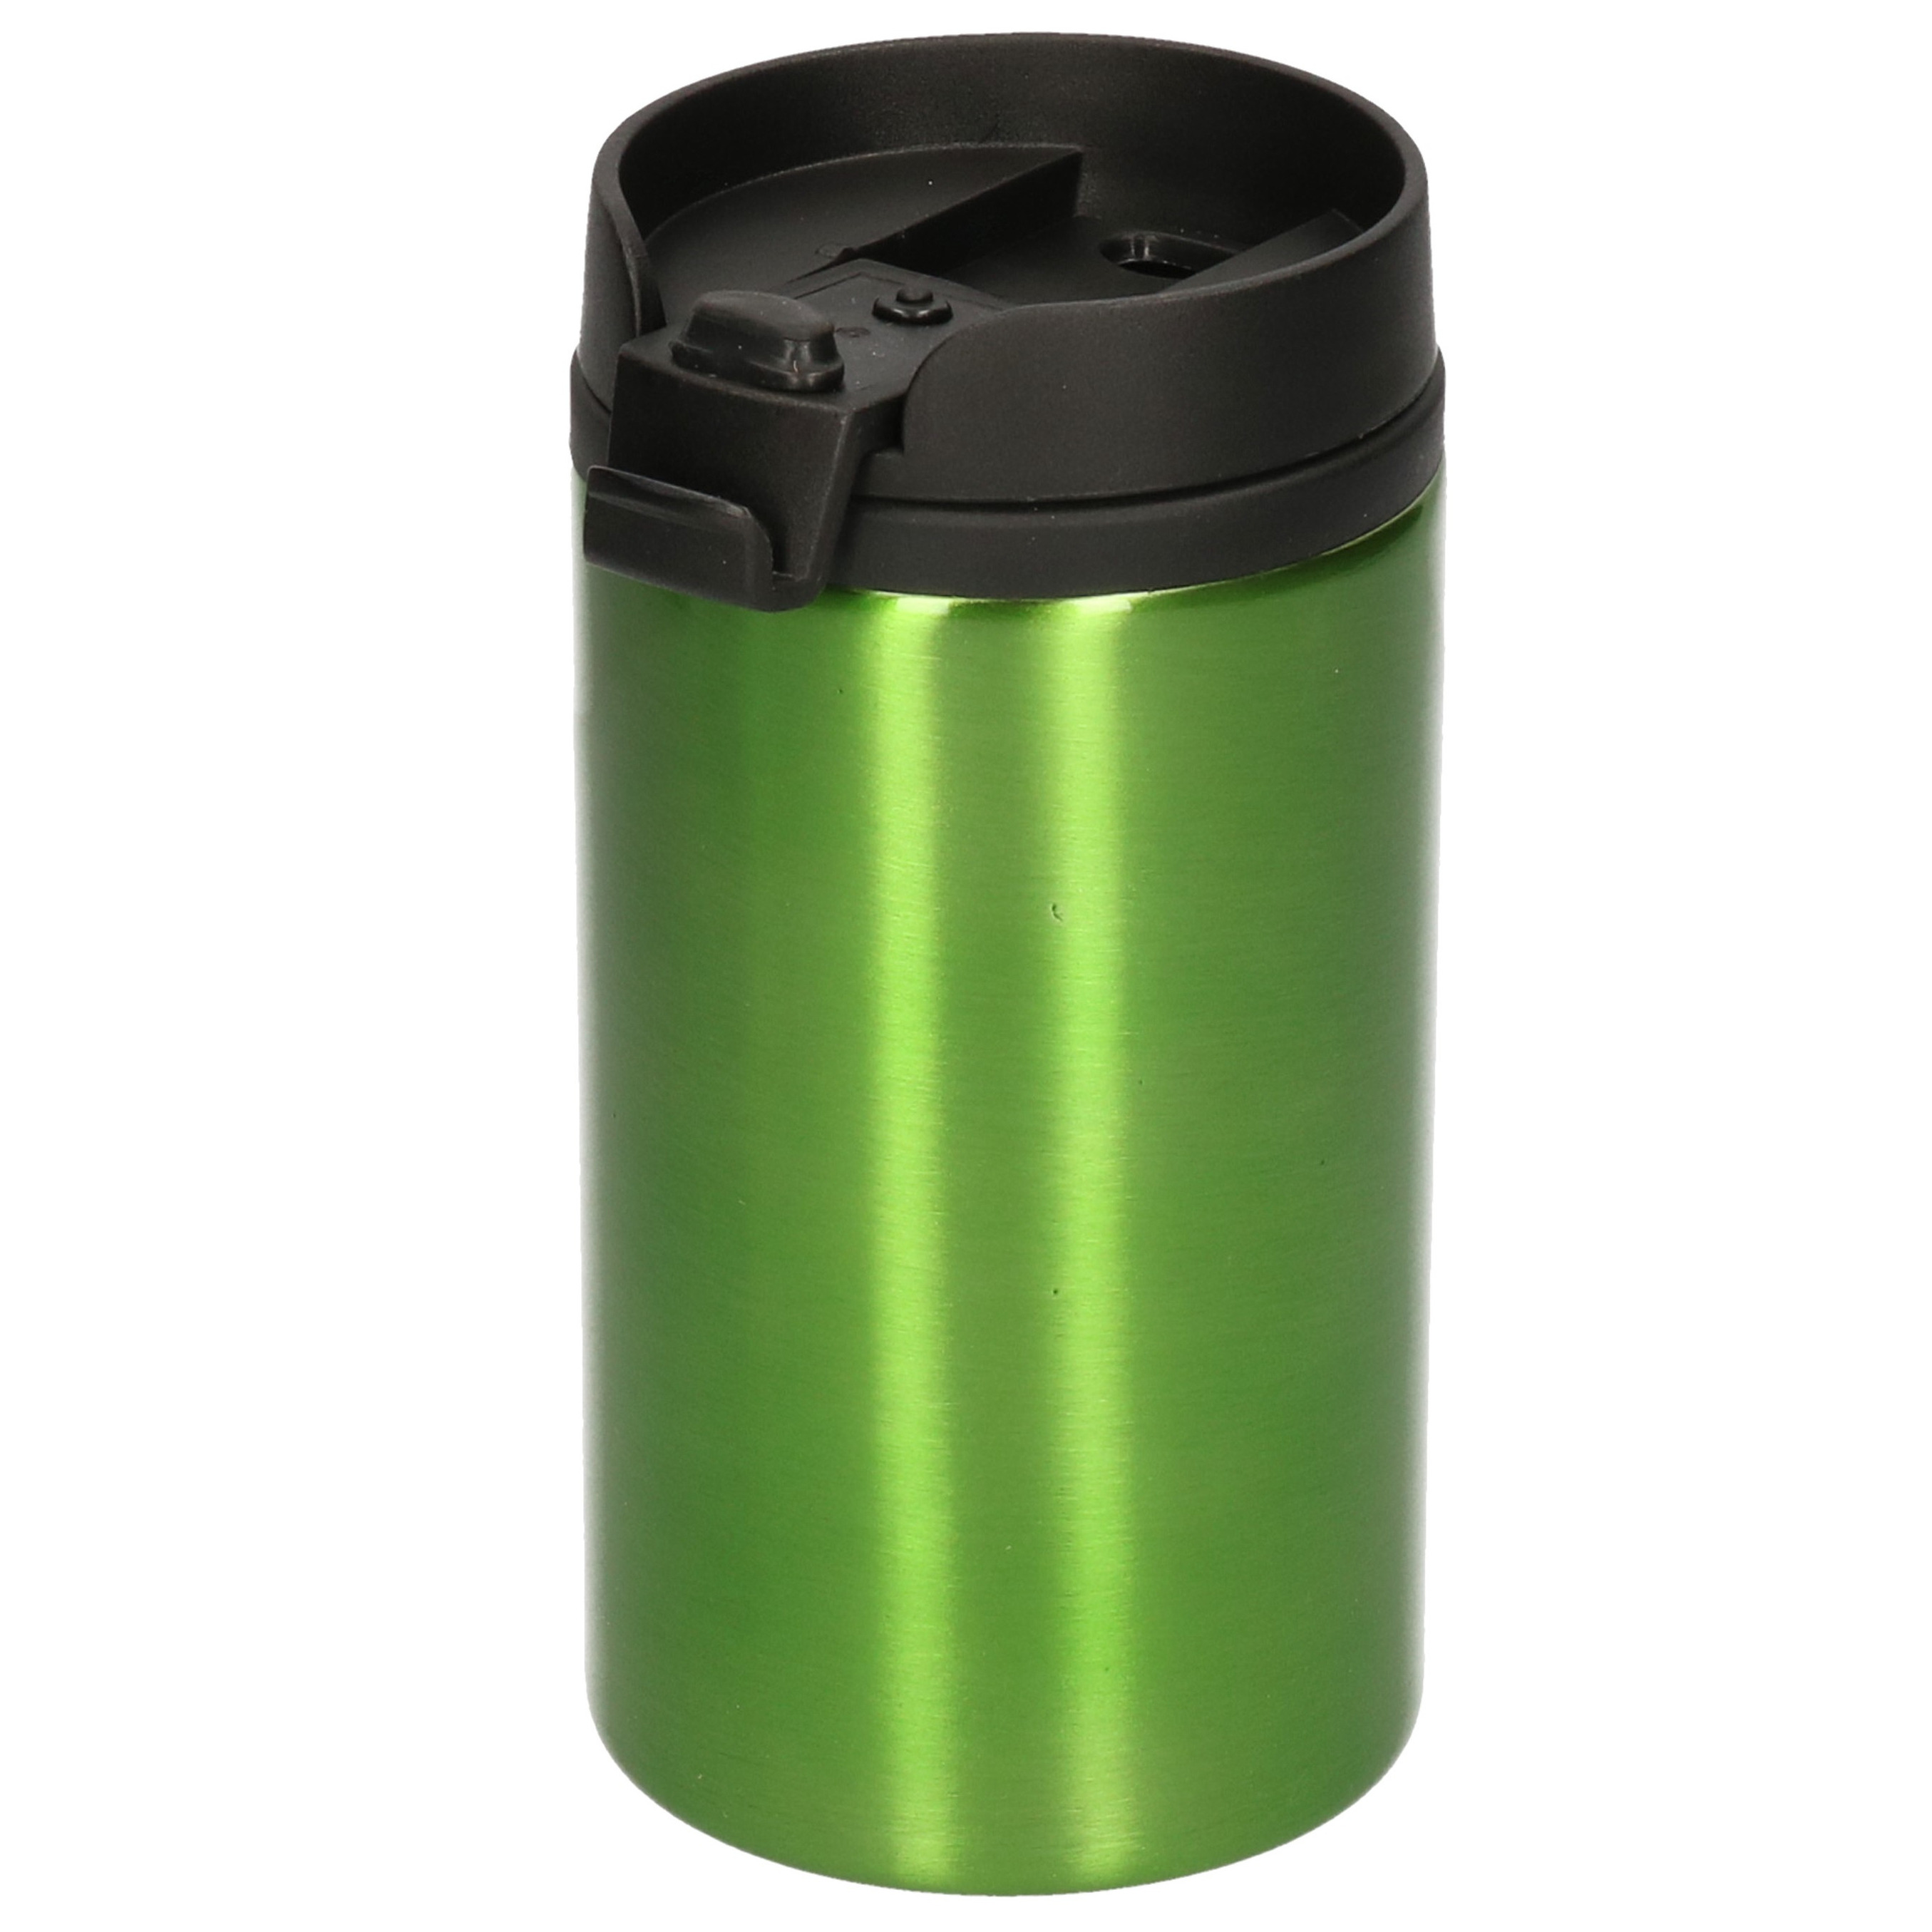 Warmhoudbeker metallic-warm houd beker groen 320 ml